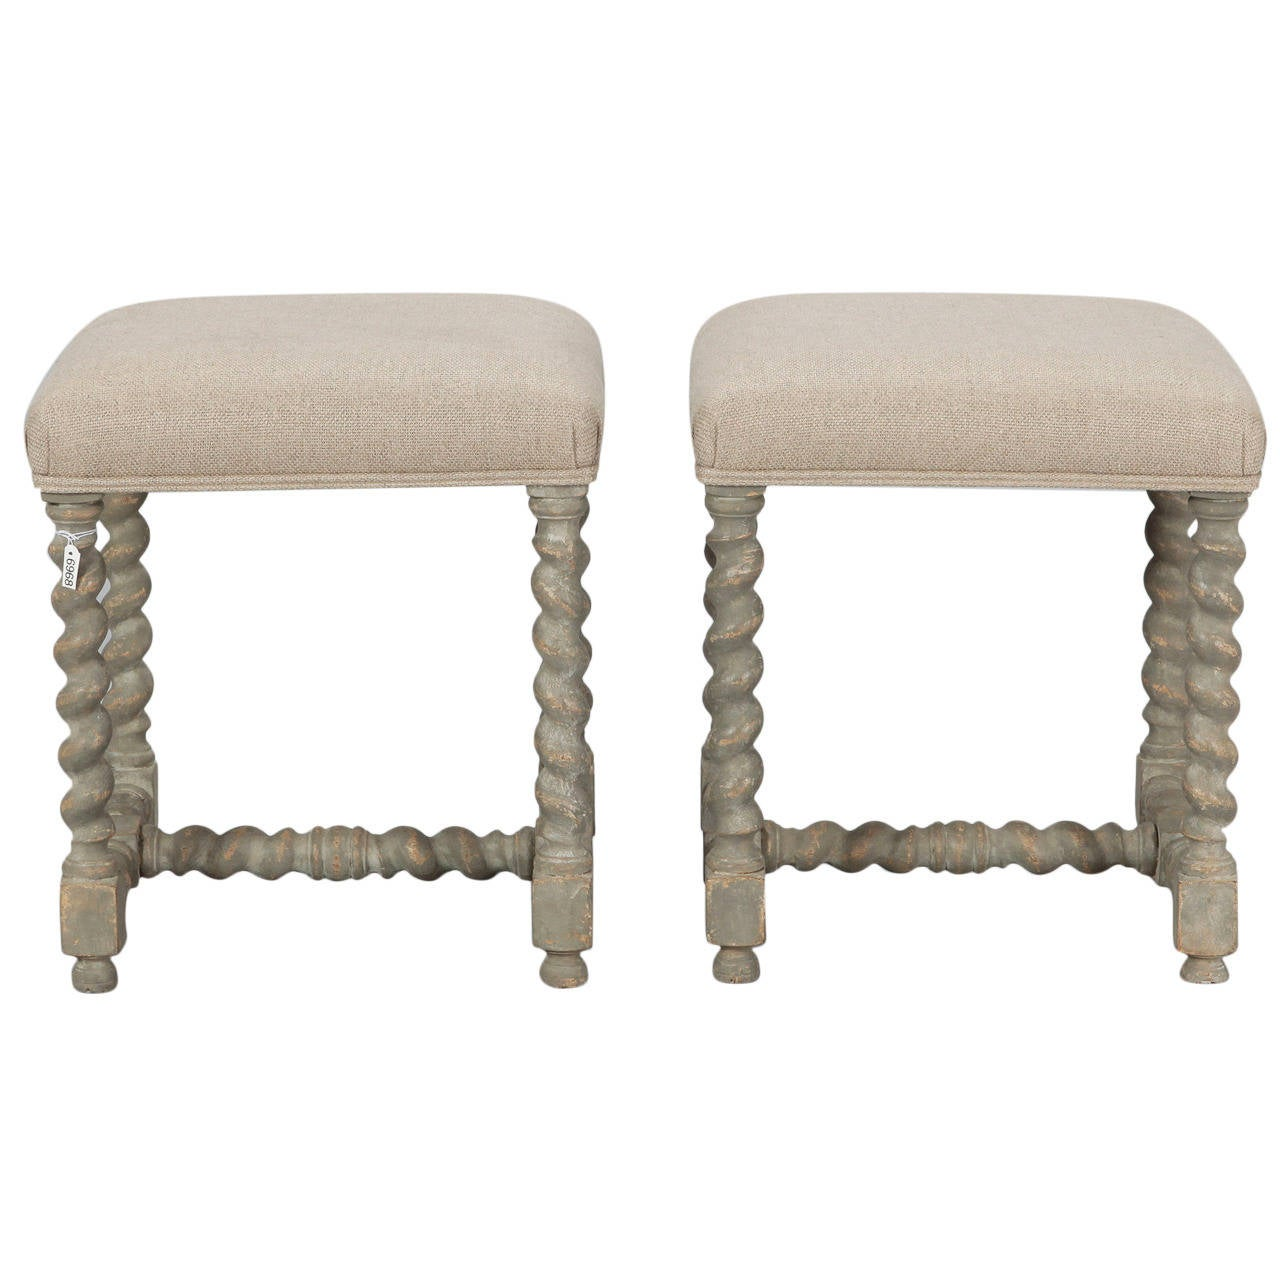 Pair Of Painted Barley Twist Upholstered Stools At 1stdibs